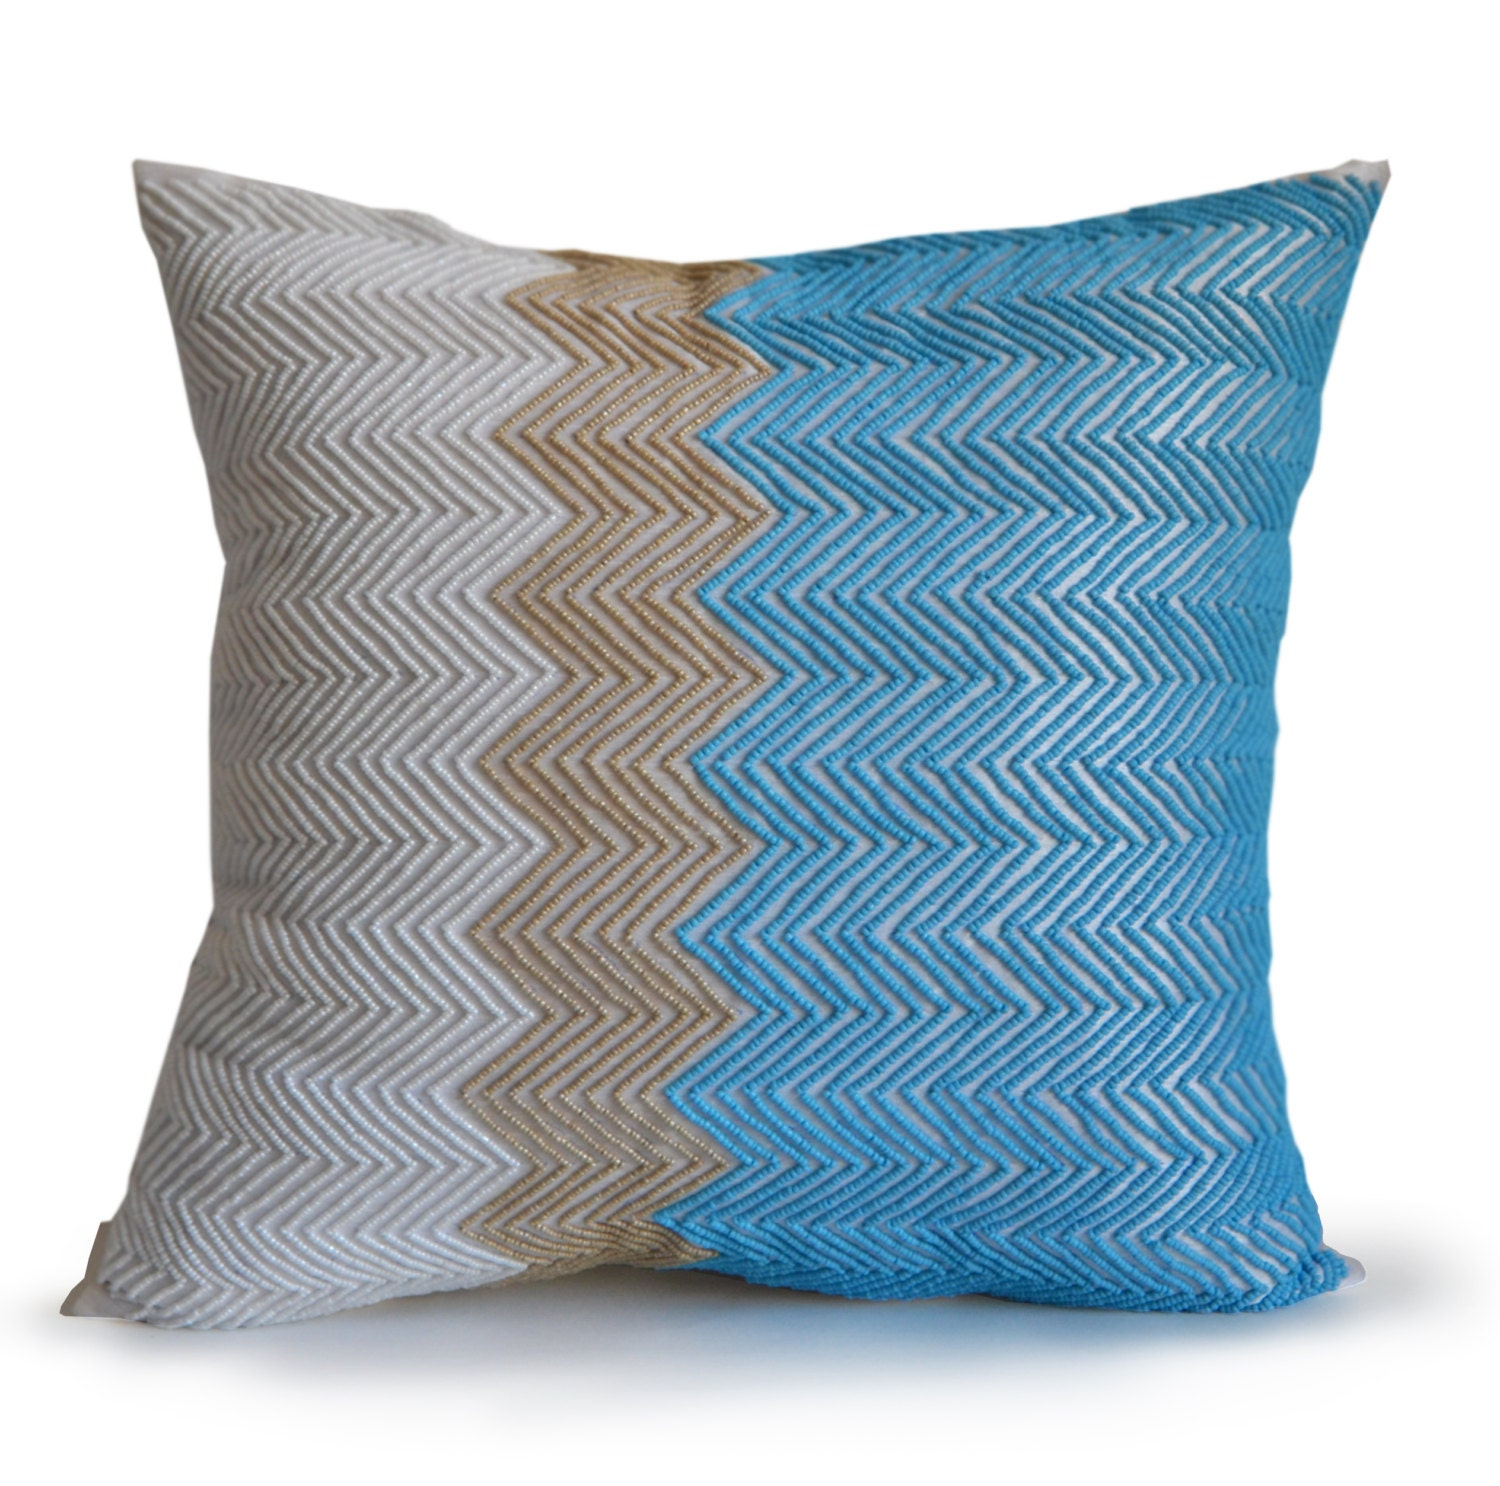 Decorative Pillows In Turquoise : Throw Pillow Cover Turquoise Beige White Decorative Pillow